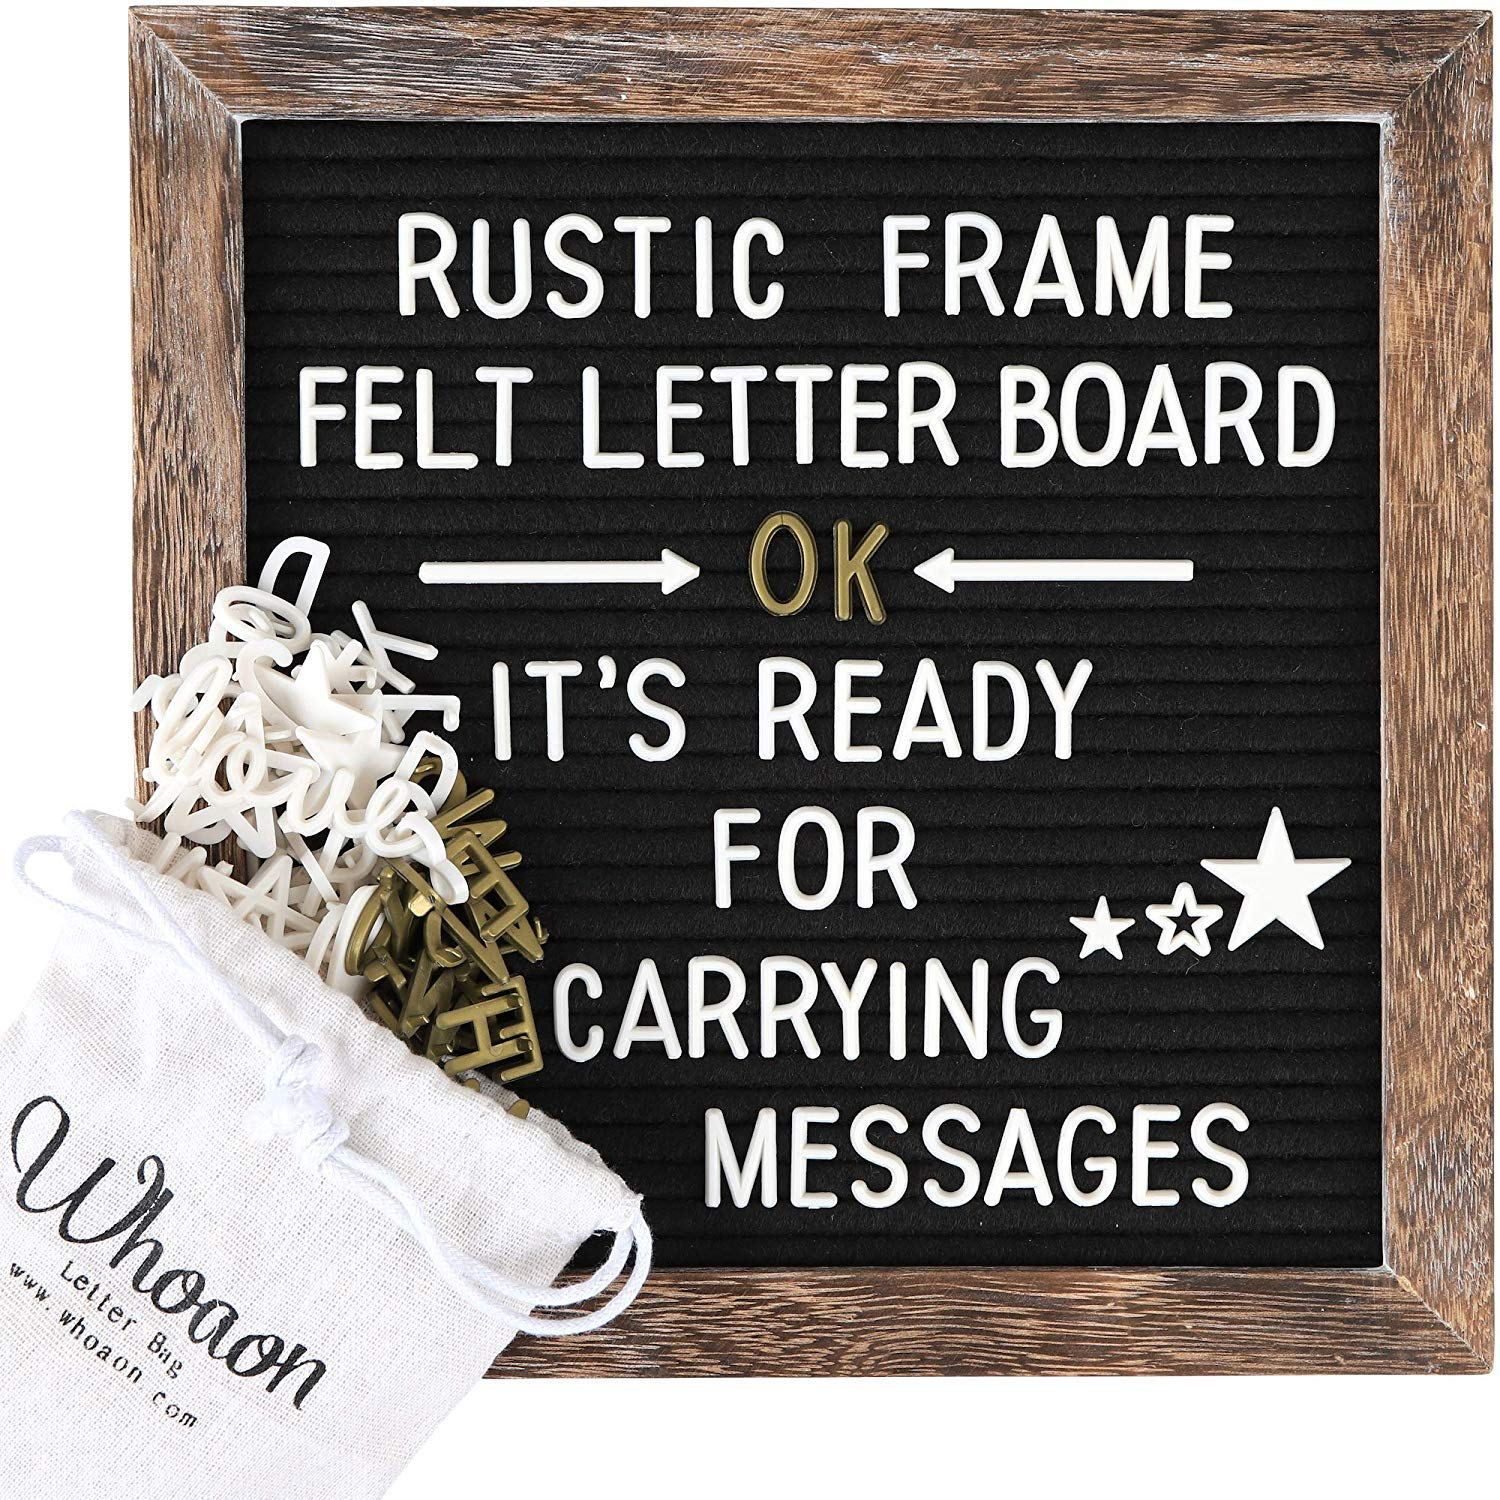 Rustic Wood Frame Black Felt Letter Board 10x10 inches. Pre-Cut 440 White & Gold Letters, Months & Days Cursive Words, Additional Symbols & Emojis, 2 Letter Bags, Scissors, Vintage Stand. by whoaon